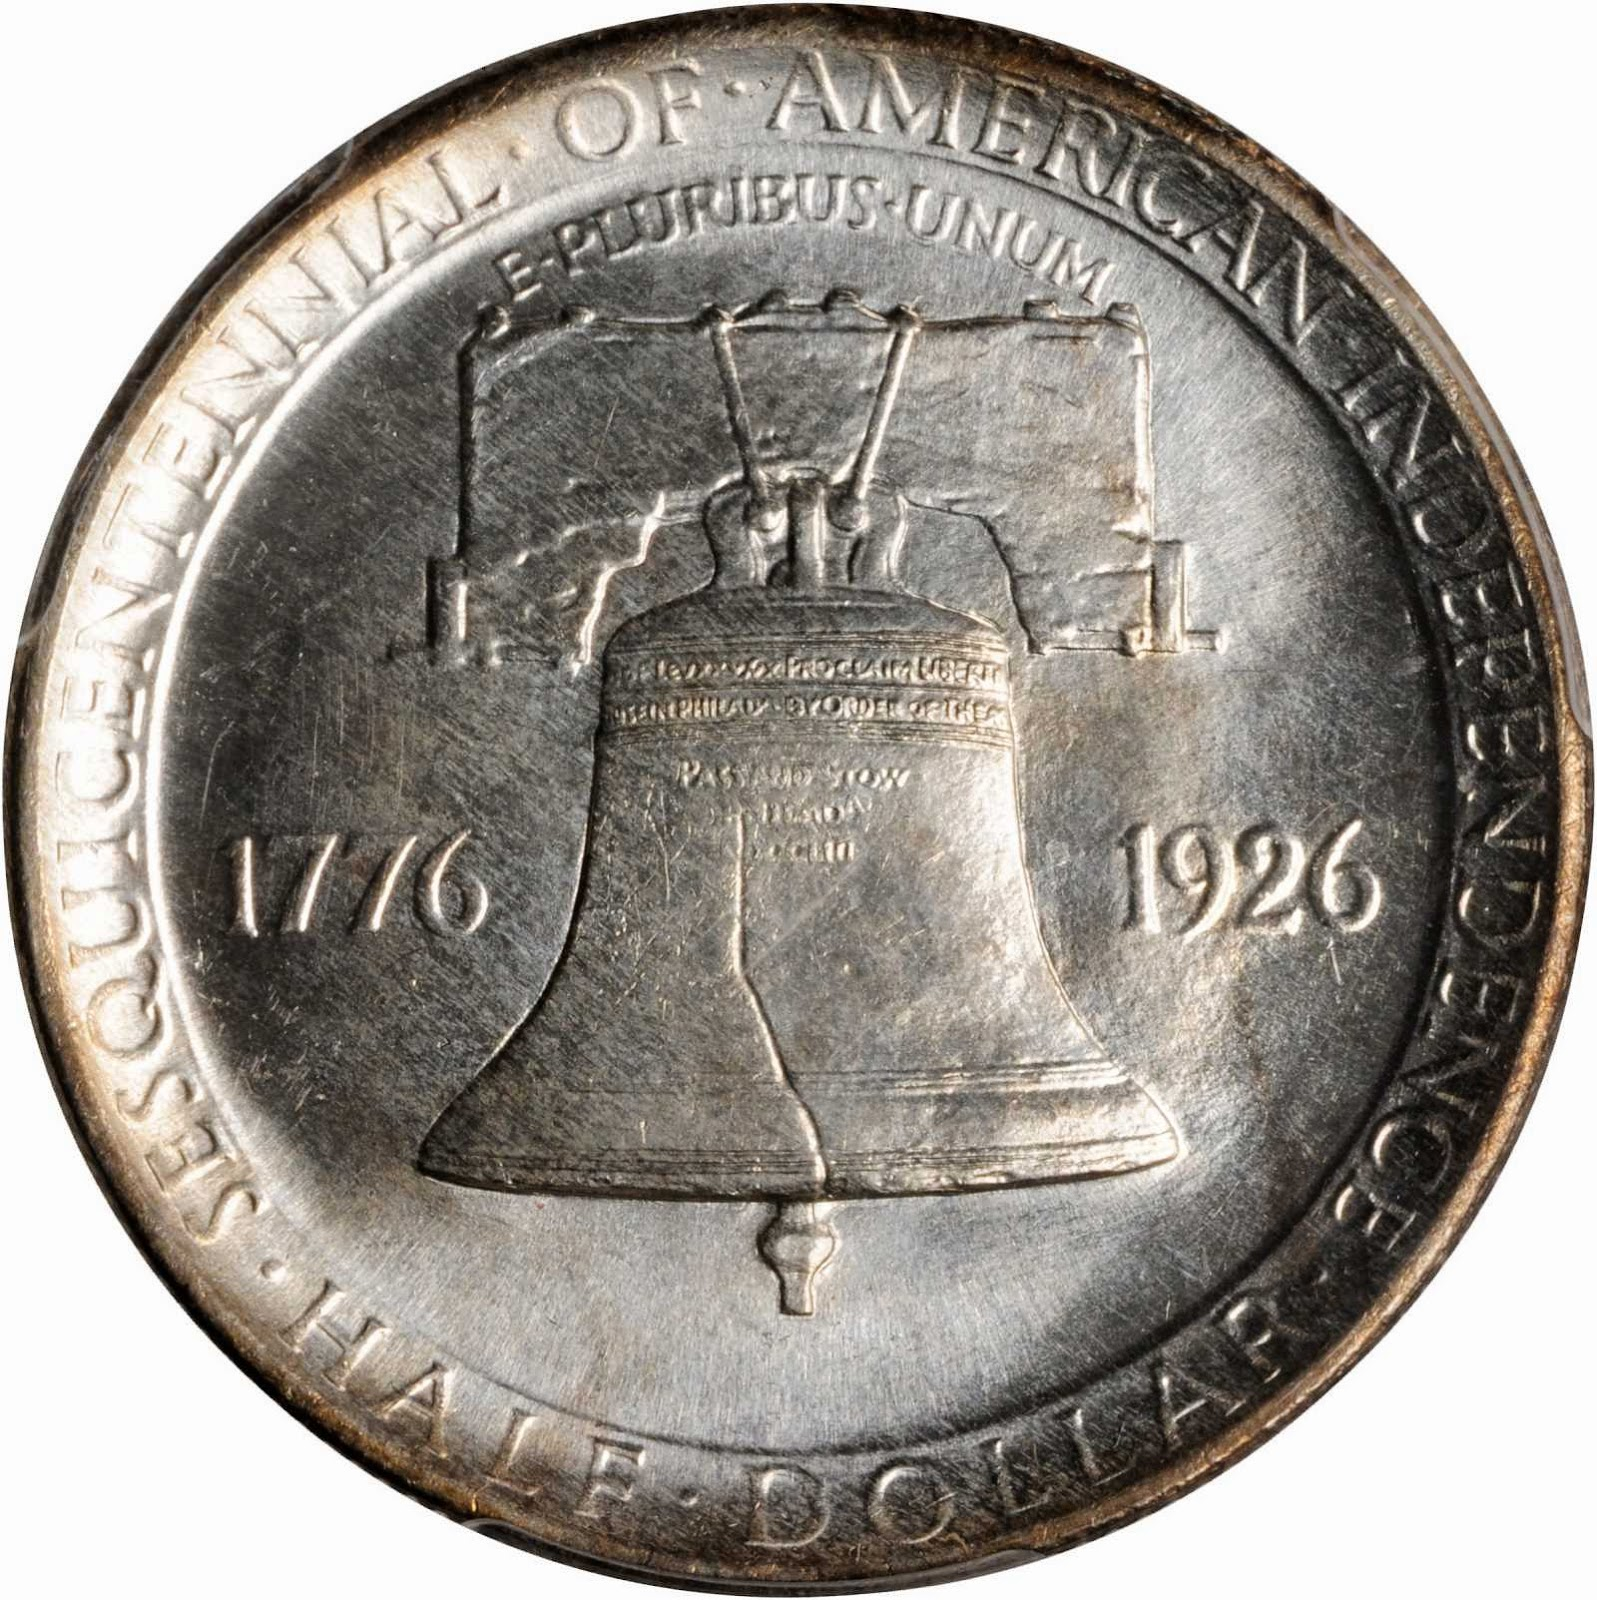 Sesquicentennial of American Independence Commemorative Half Dollar